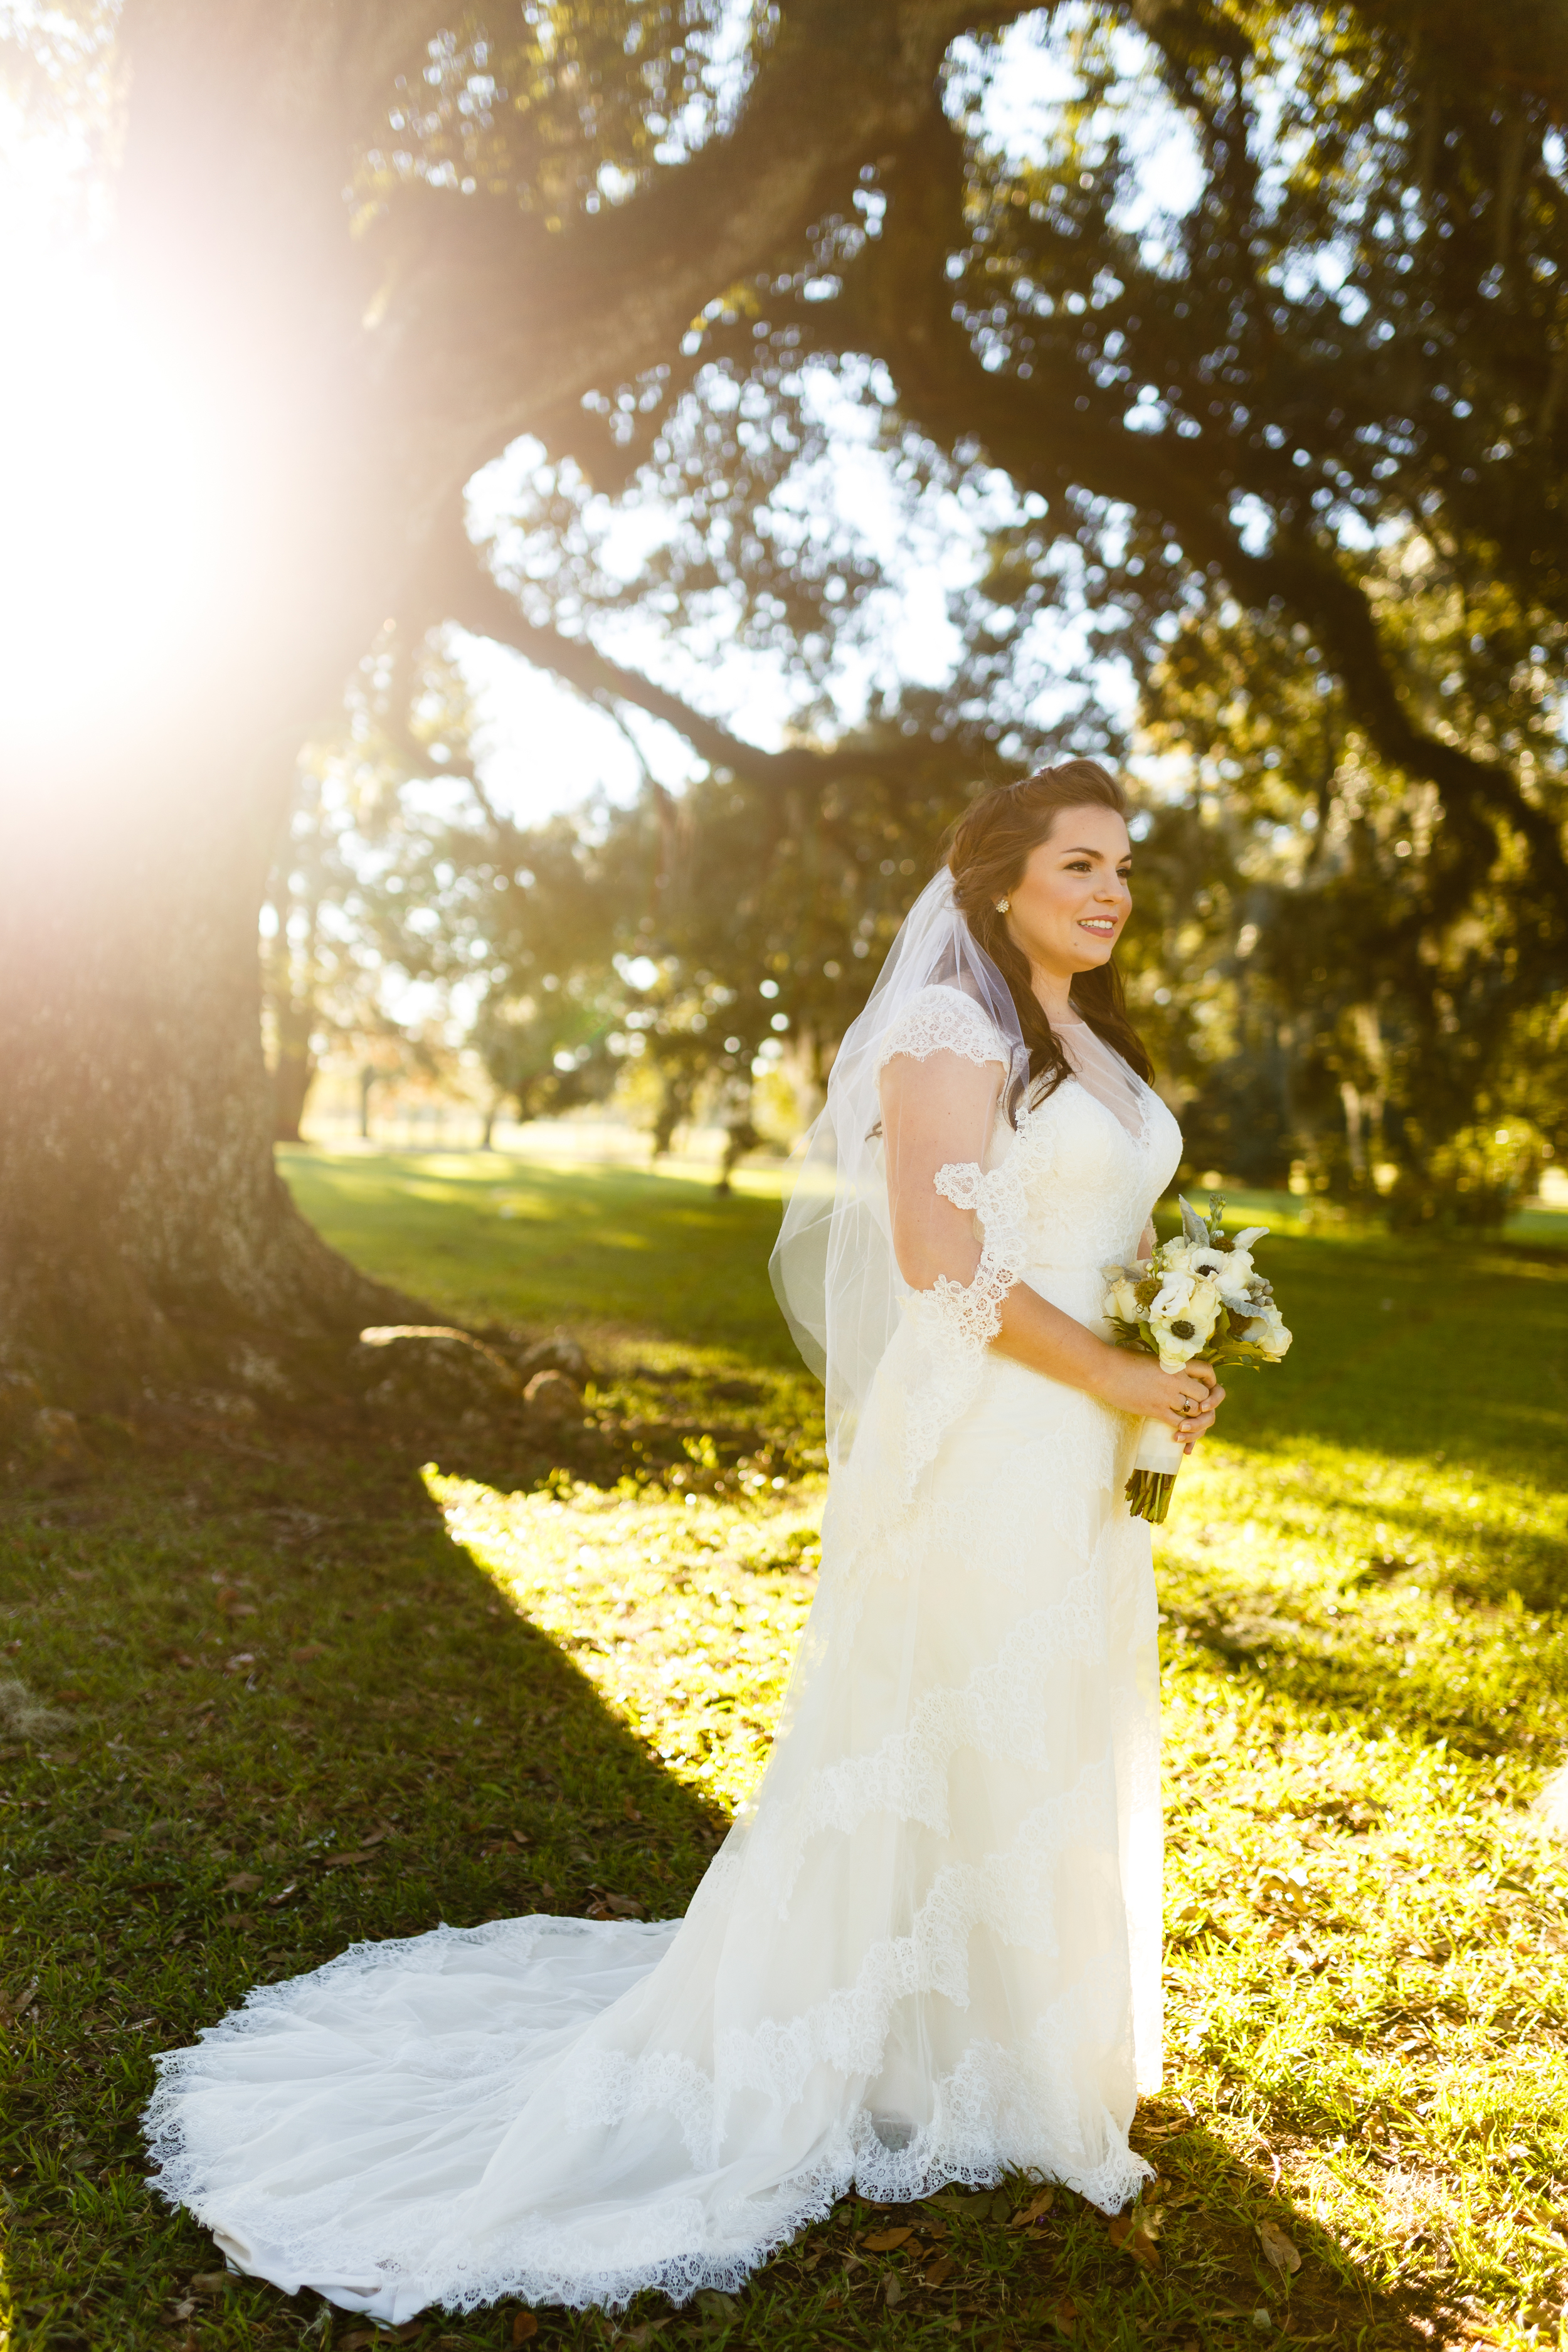 Bridal-wedding-portrait-lafayette-broussard-youngsville-photographer-2.jpg